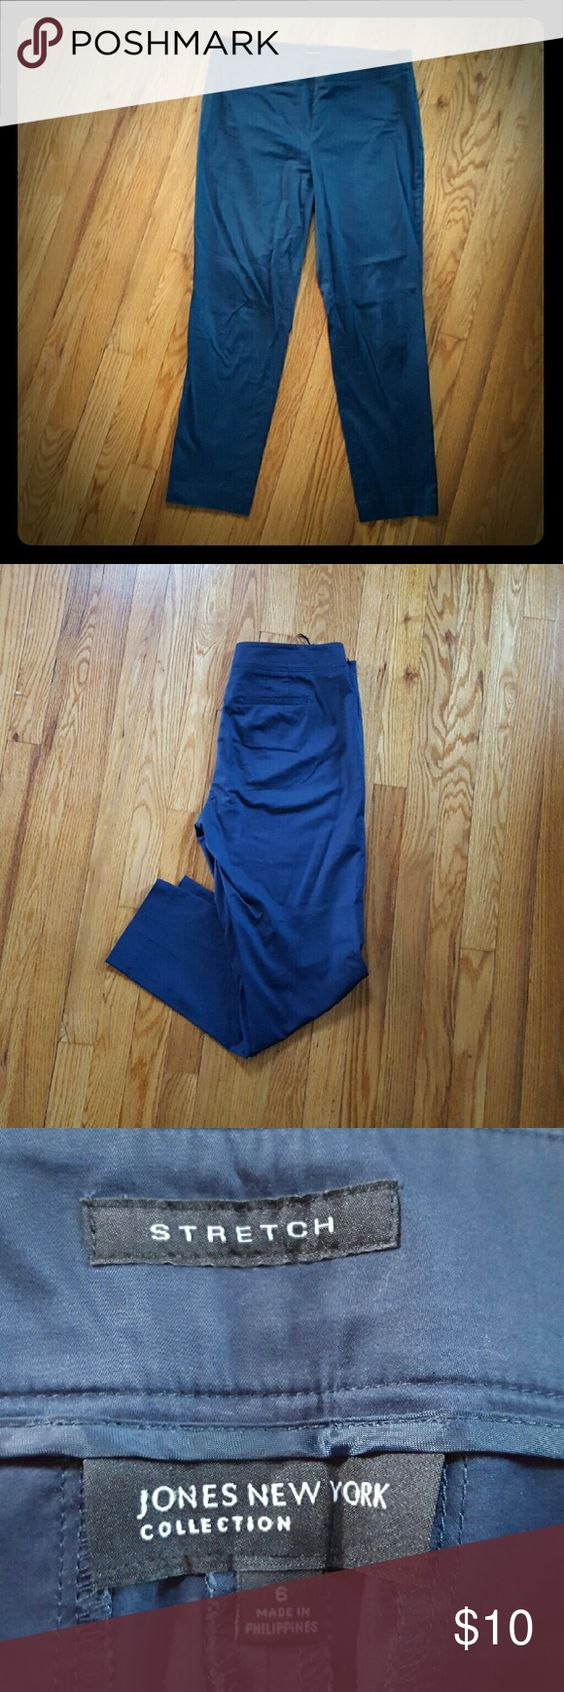 """Jones New York side zip ankle pant Navy blue side zip pant. 29"""" inseam. Very slimming and comfortable. No trades please. Jones New York Pants Ankle & Cropped"""